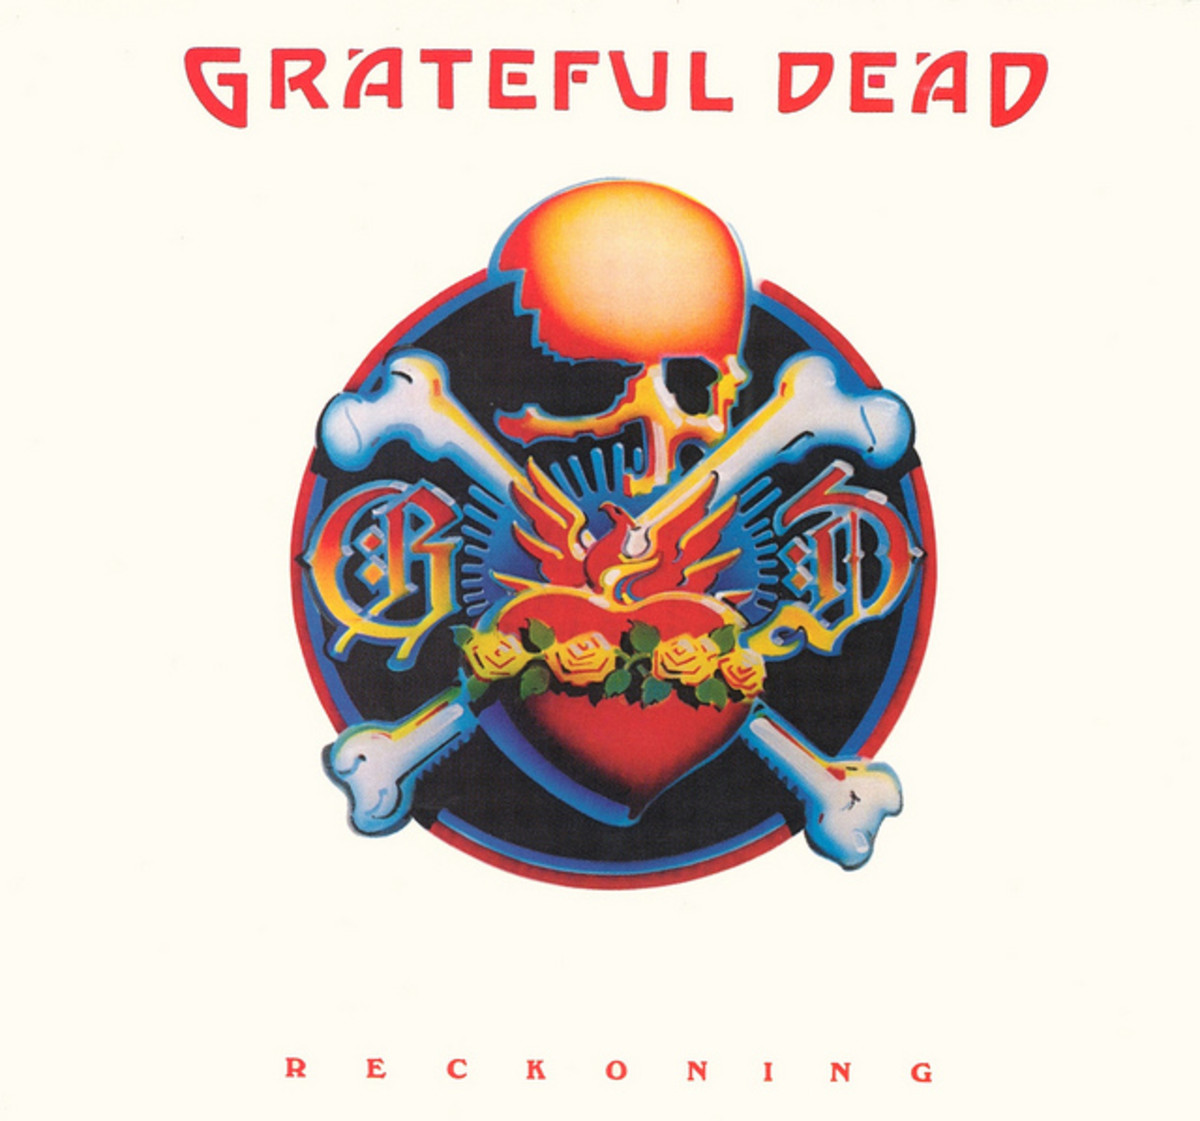 "Grateful Dead ""Reckoning"" Arista Records A2L 8604 12"" LP Vinyl Record, US Pressing (1981) Album Cover Art by Rick Griffin"